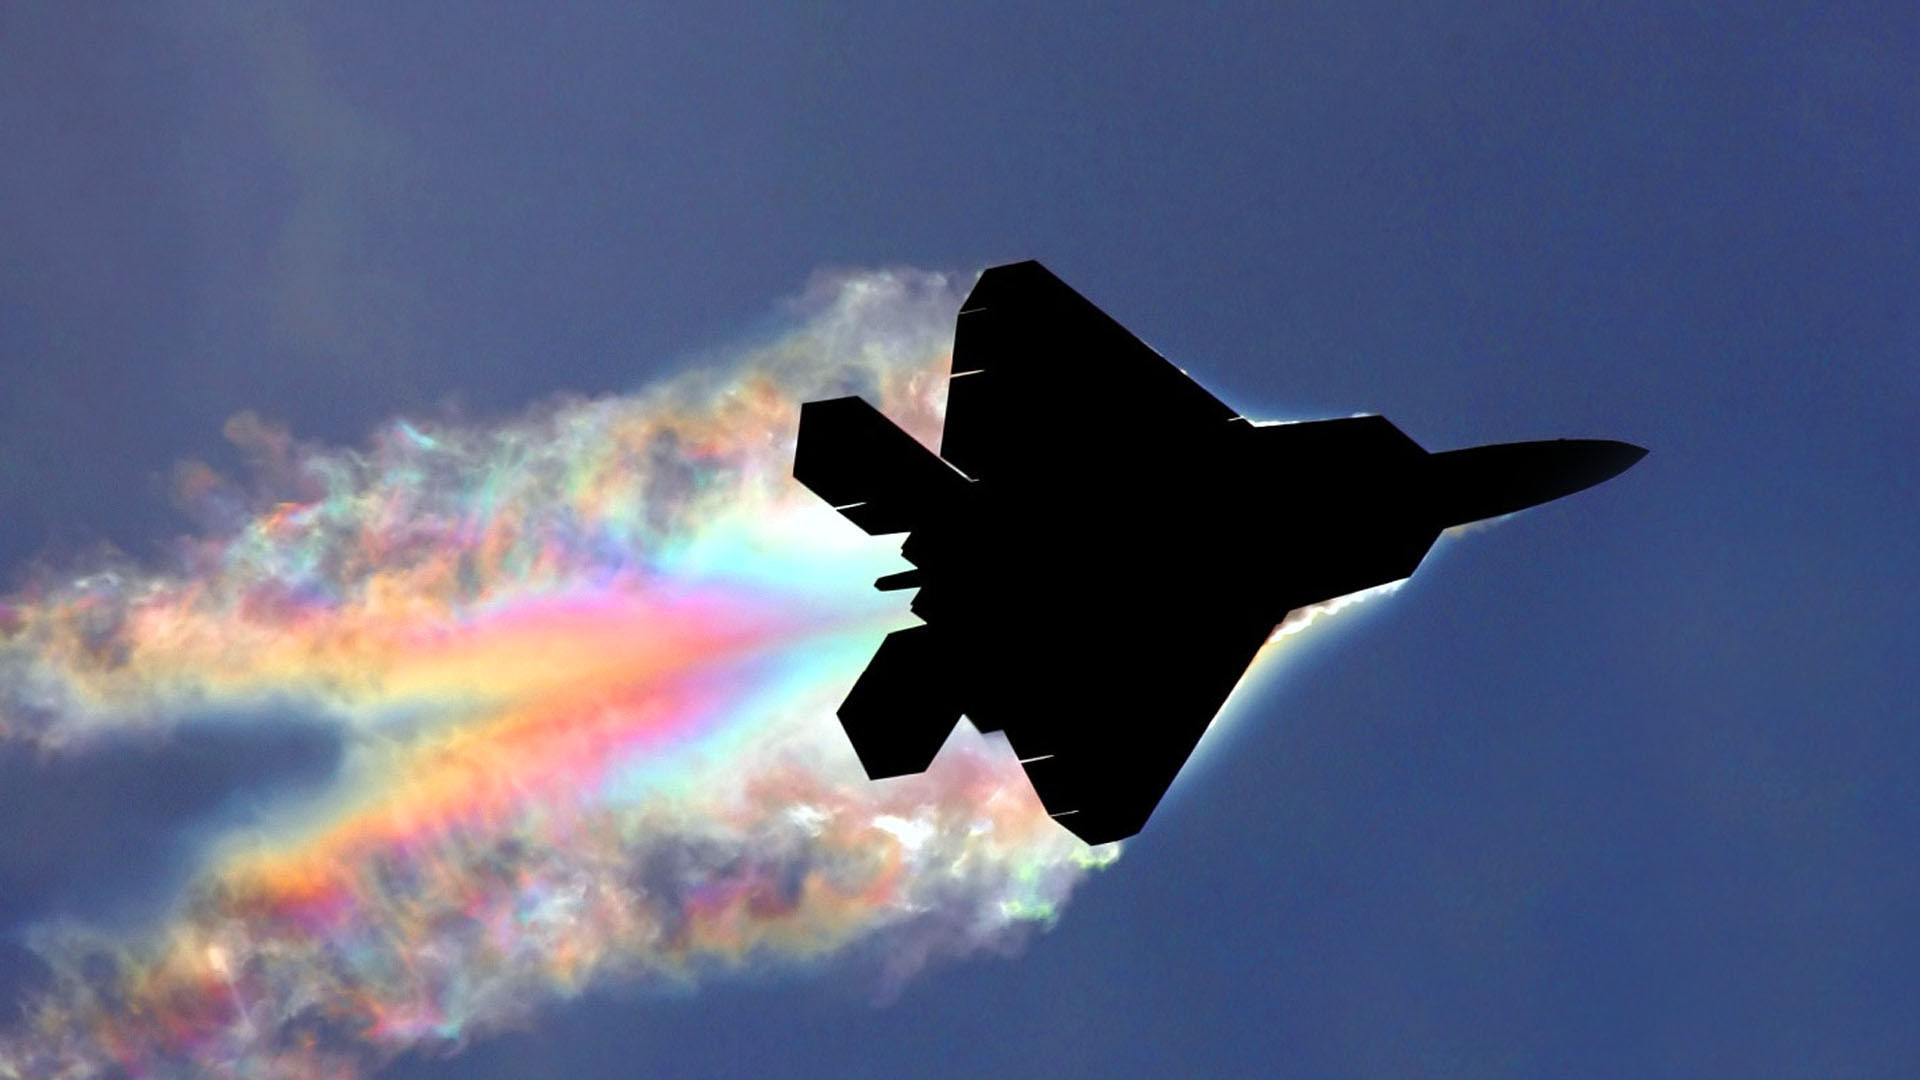 1920x1080 Aircraft Contrails F-22 Raptor Military Planes Rainbows